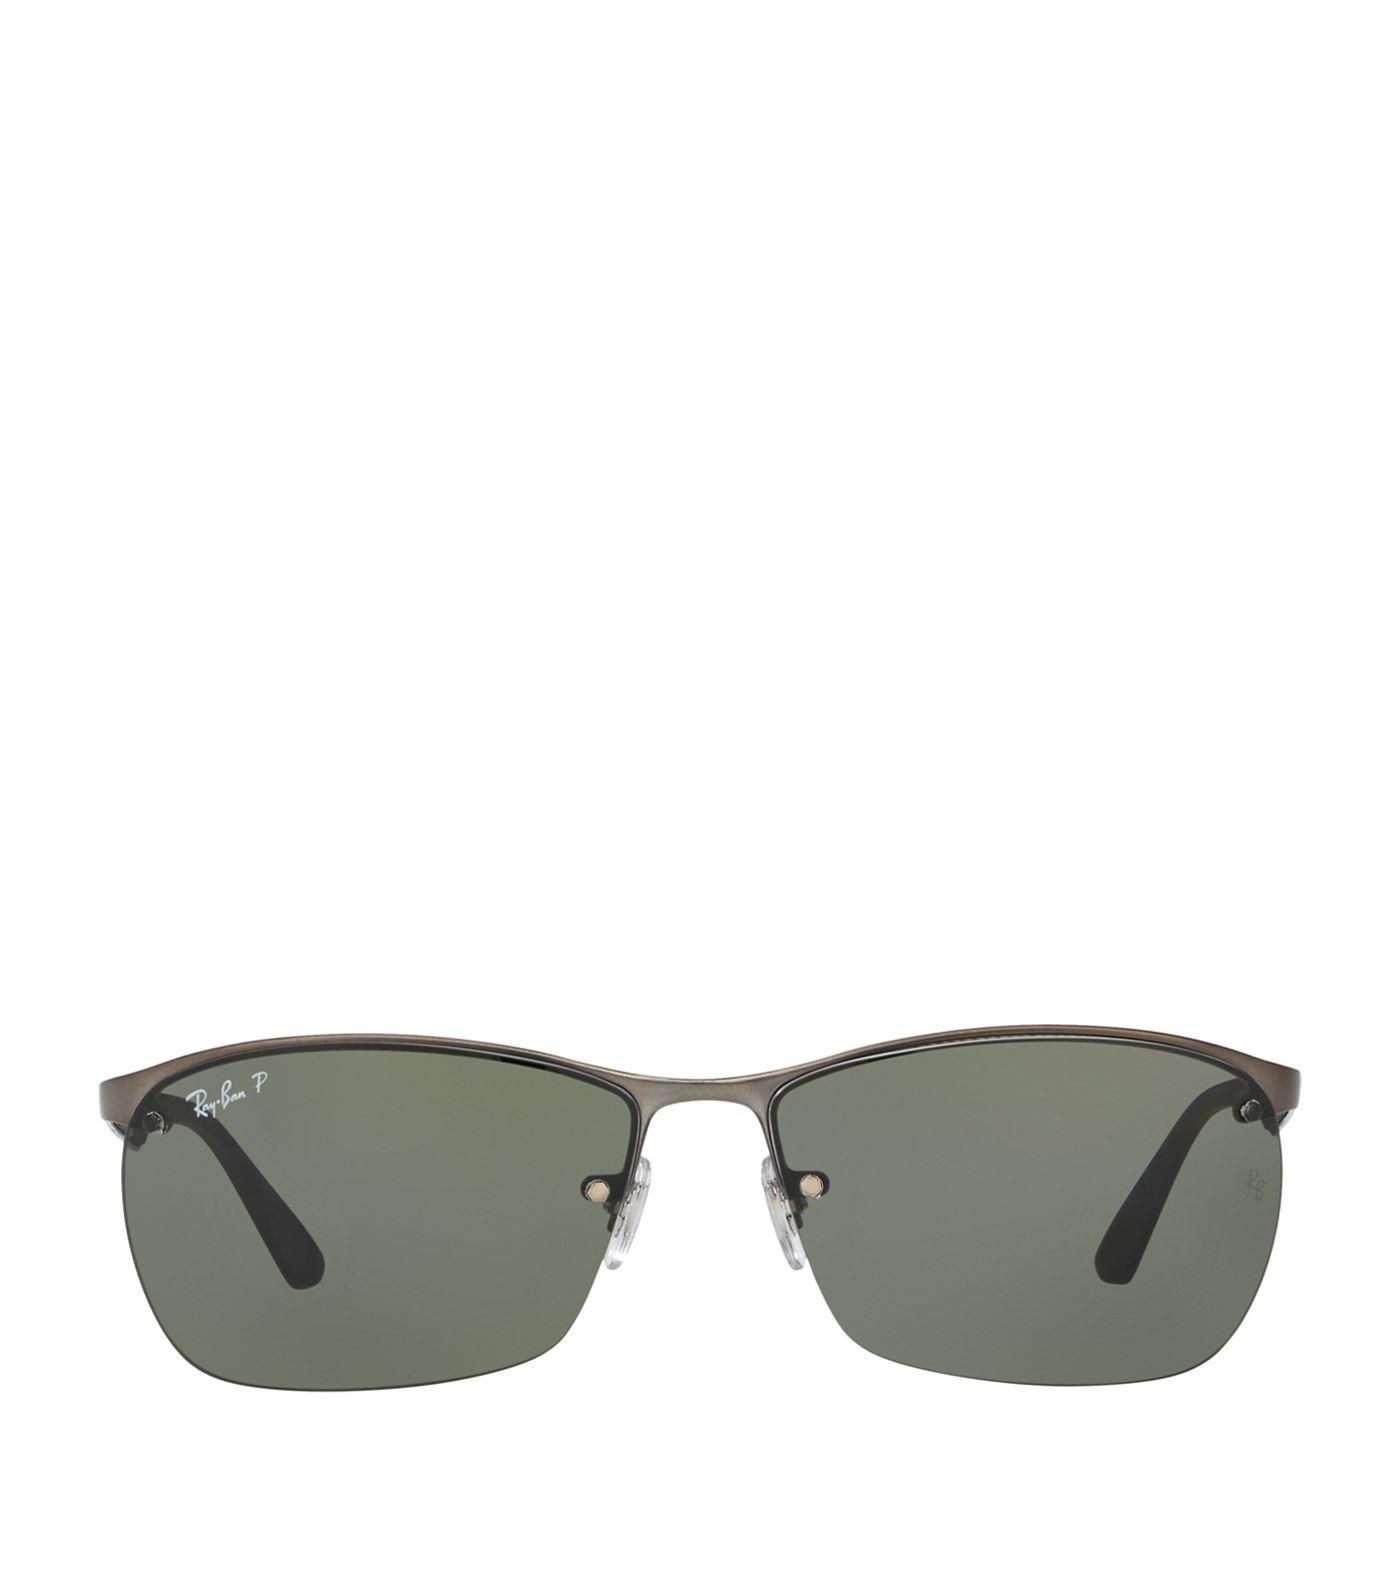 Lyst - Ray-Ban Half-frame Sunglasses in Gray for Men